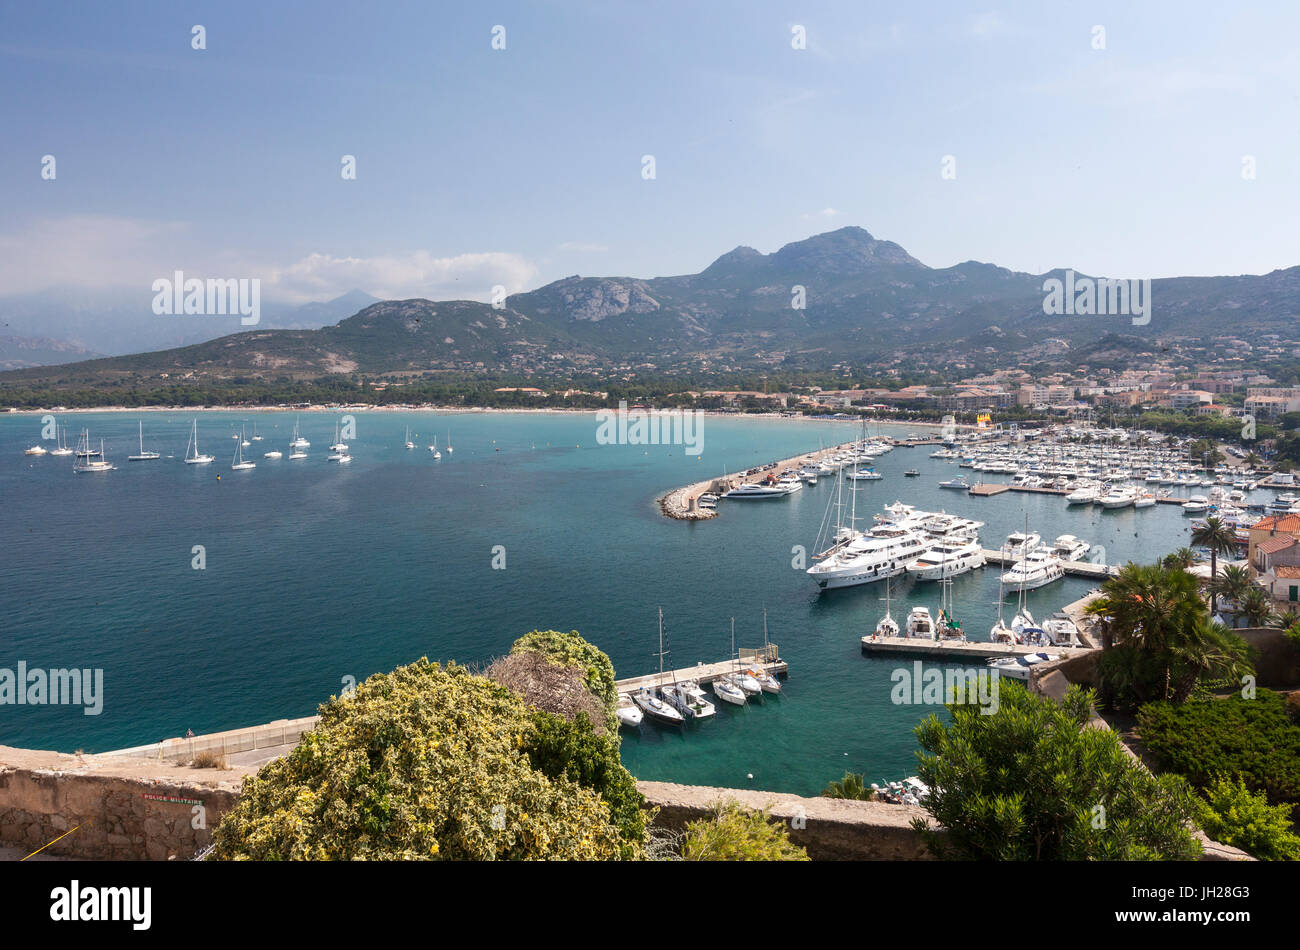 View of the harbor in the bay surrounded by the turquoise sea, Calvi, Balagne Region, northwest Corsica, France, - Stock Image